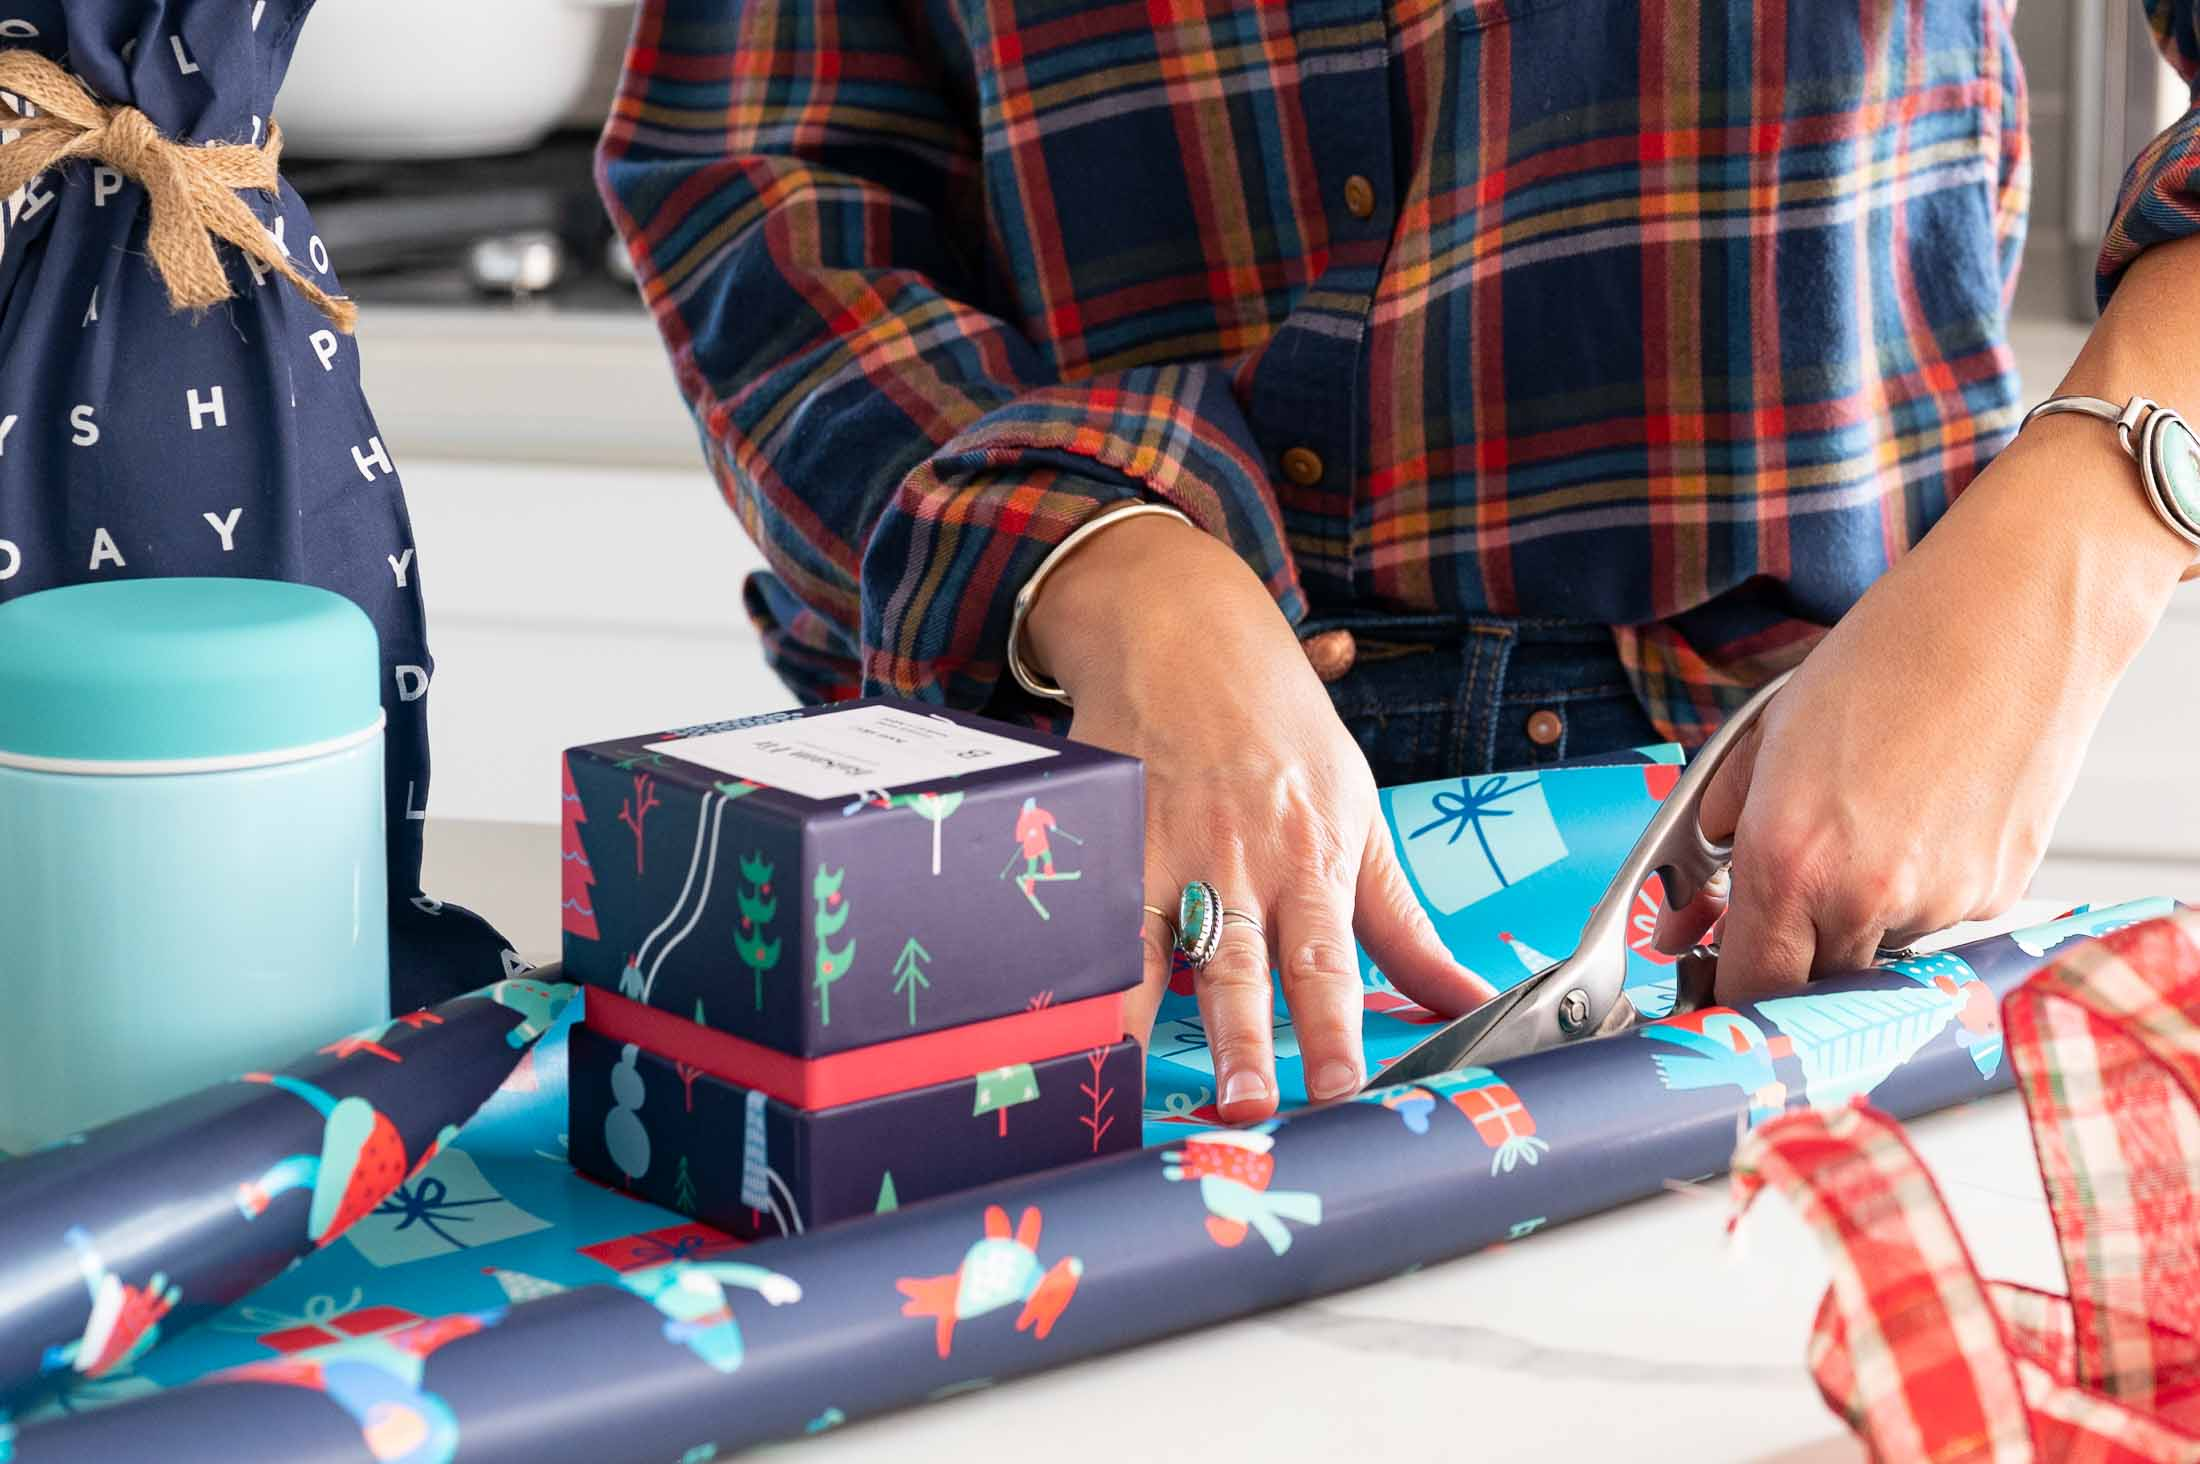 For Giving Tuesday, we're looking at gifts that give back. A fun kit for date night-in from Boon Supply totally nails it. Shop with us (for a cause).